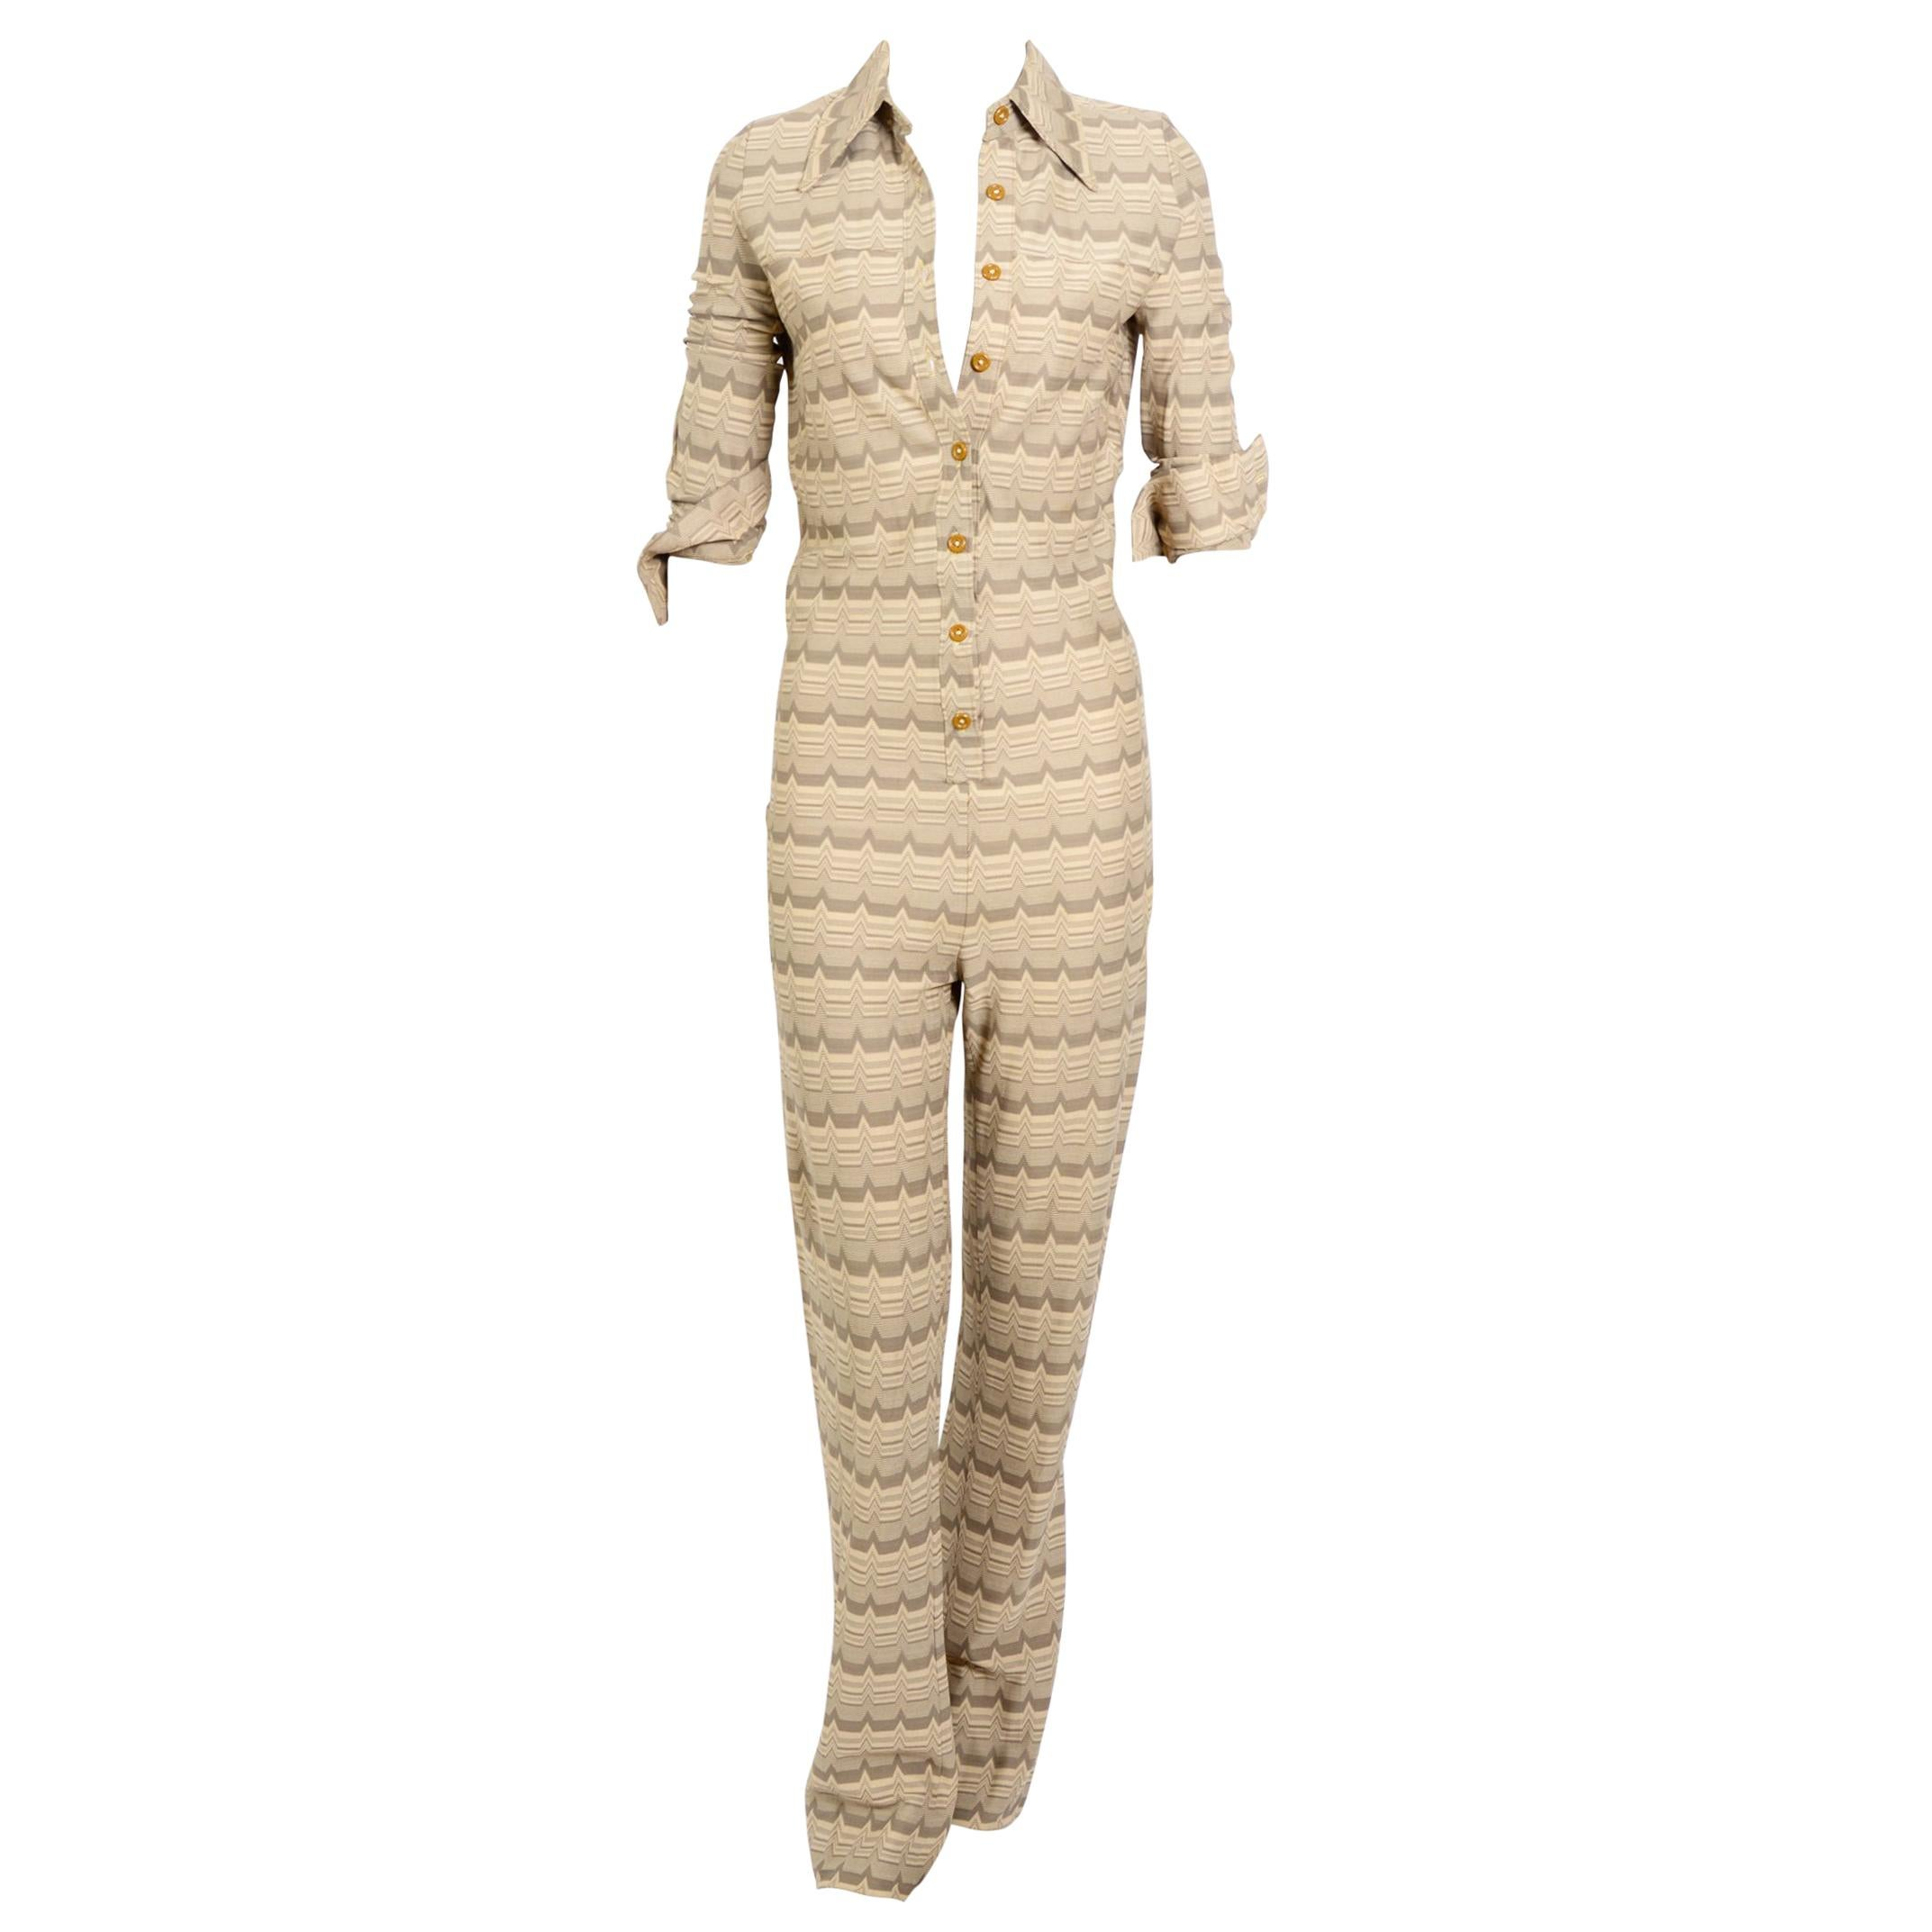 Vintage 1960s Mary Quant Twiggy style catsuit